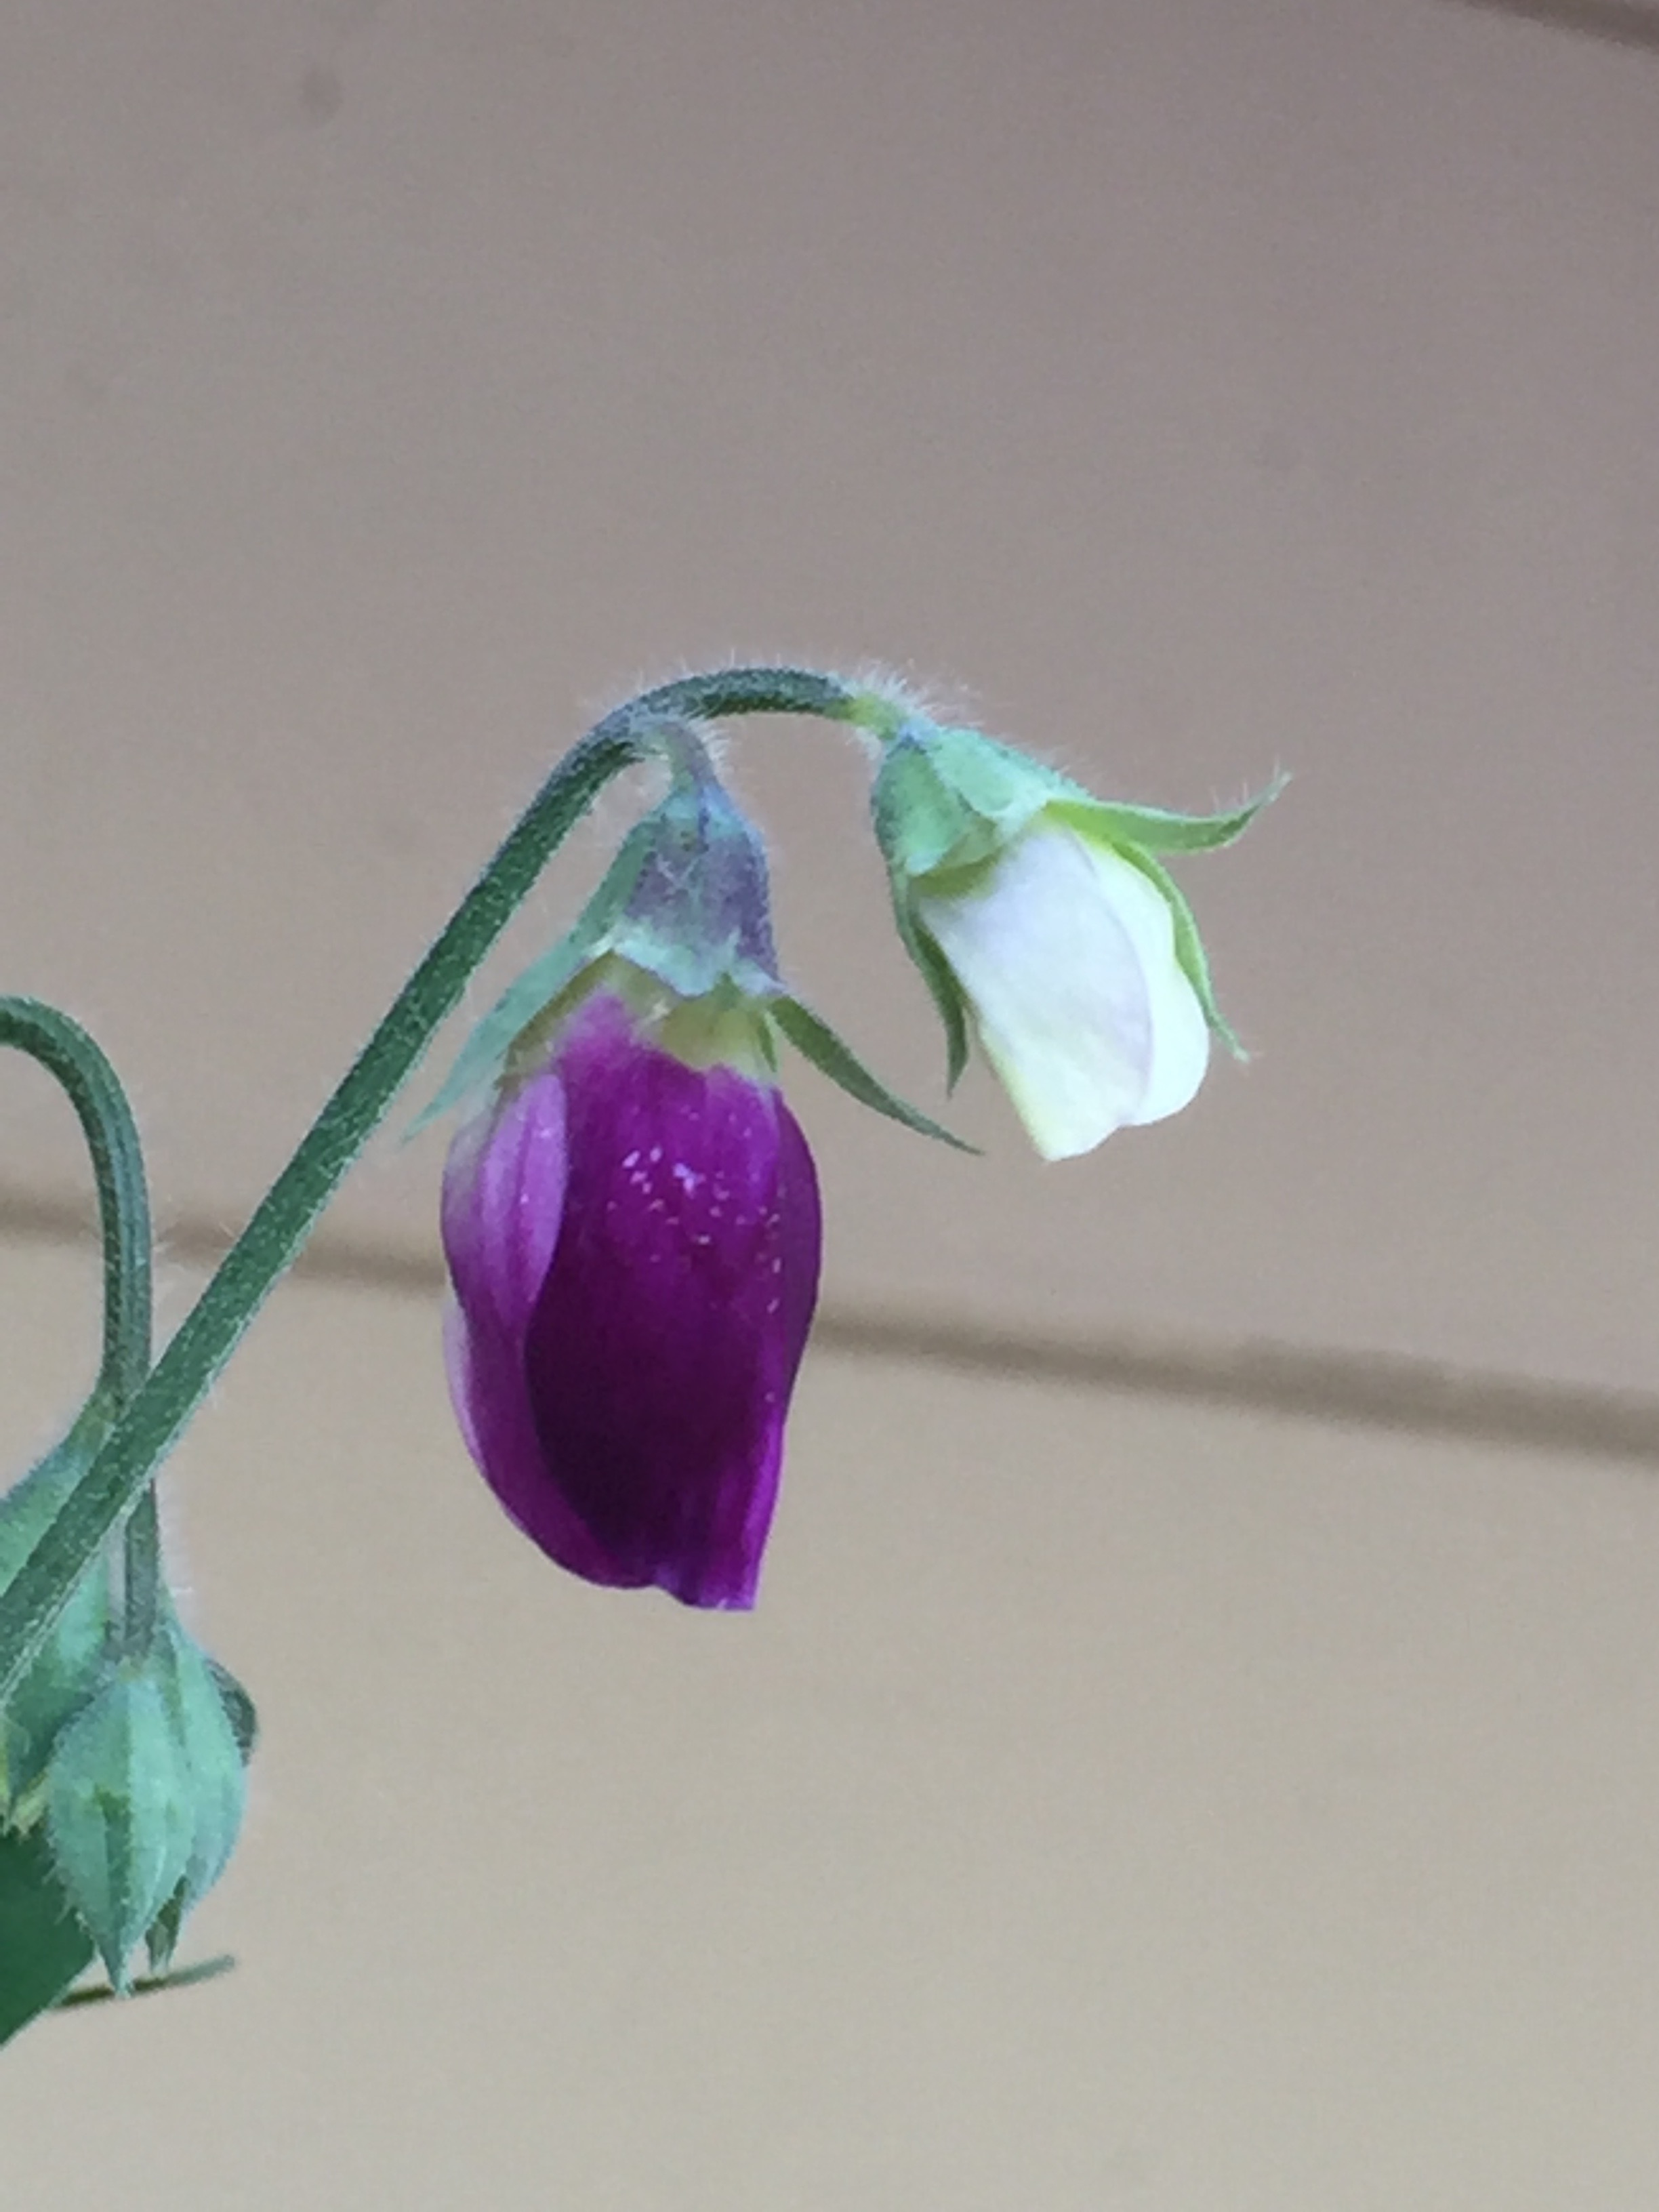 the first Sweet Pea